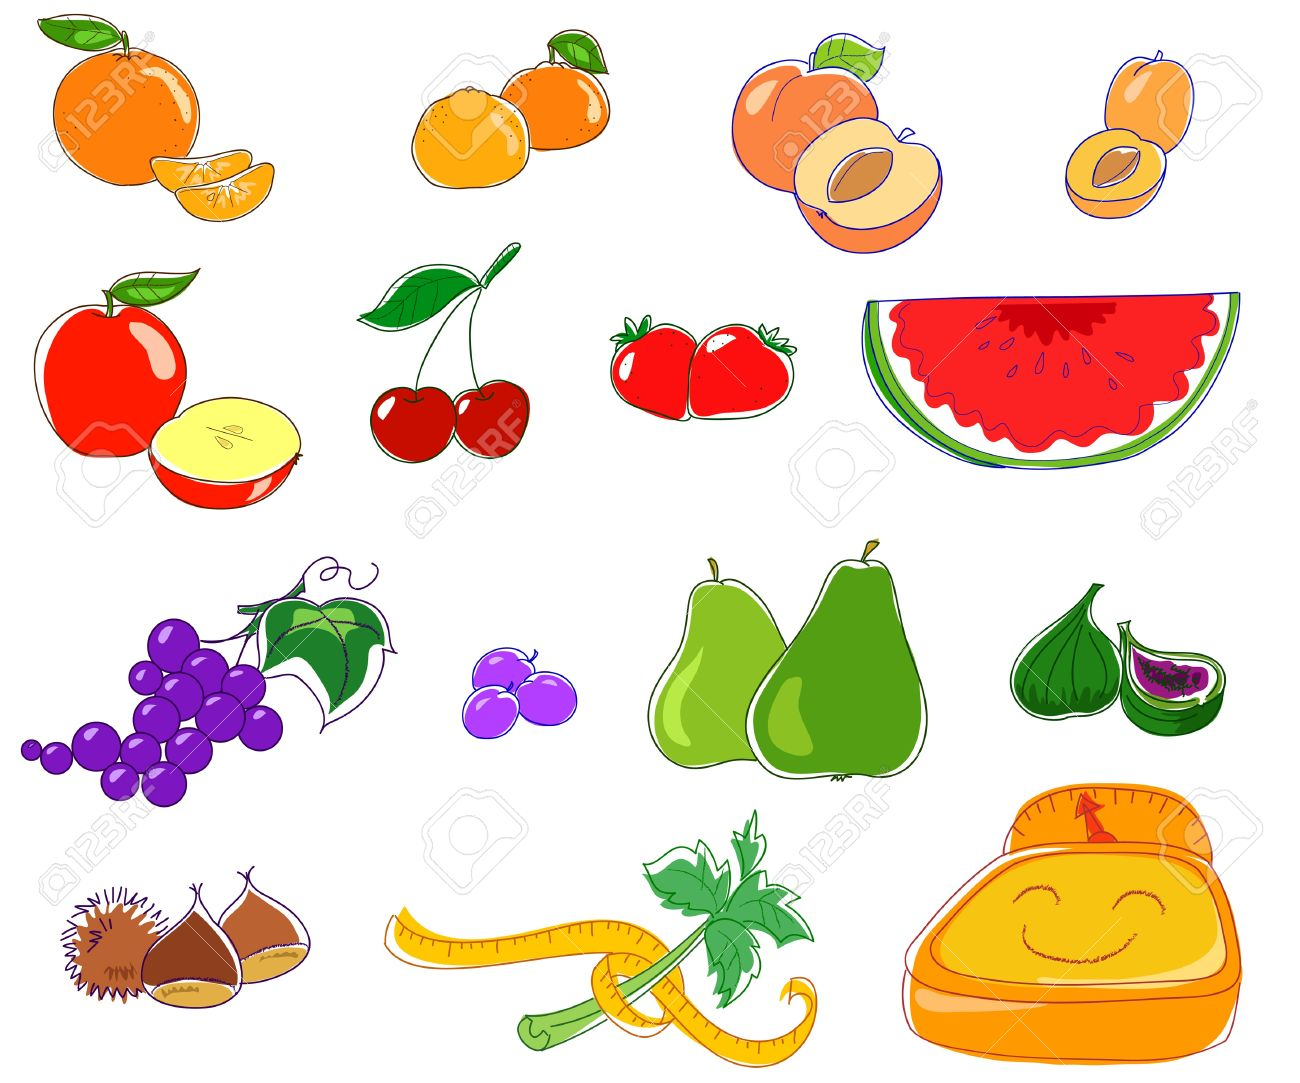 Food and good health - Good Food For A Good Health Vector Image Stock Vector